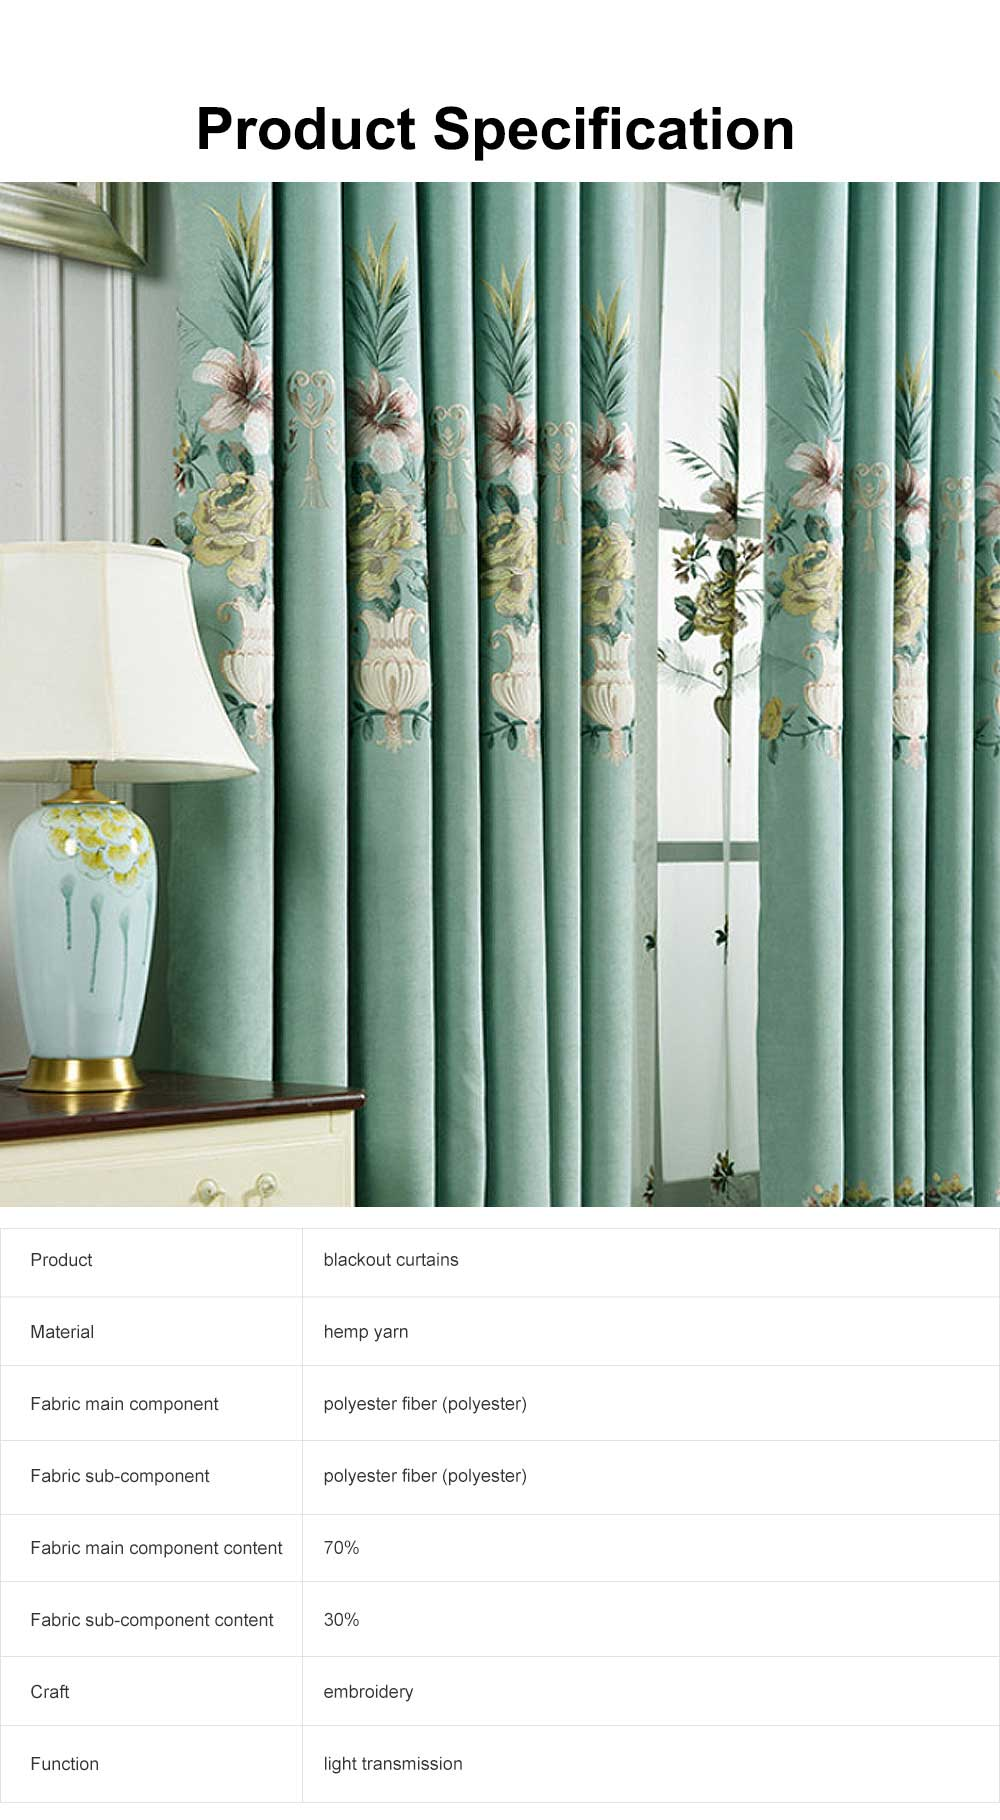 Modern Minimalist Curtains, Household Blackout Curtains for Living Room, Bedroom Chenille Floor Window Curtains 6